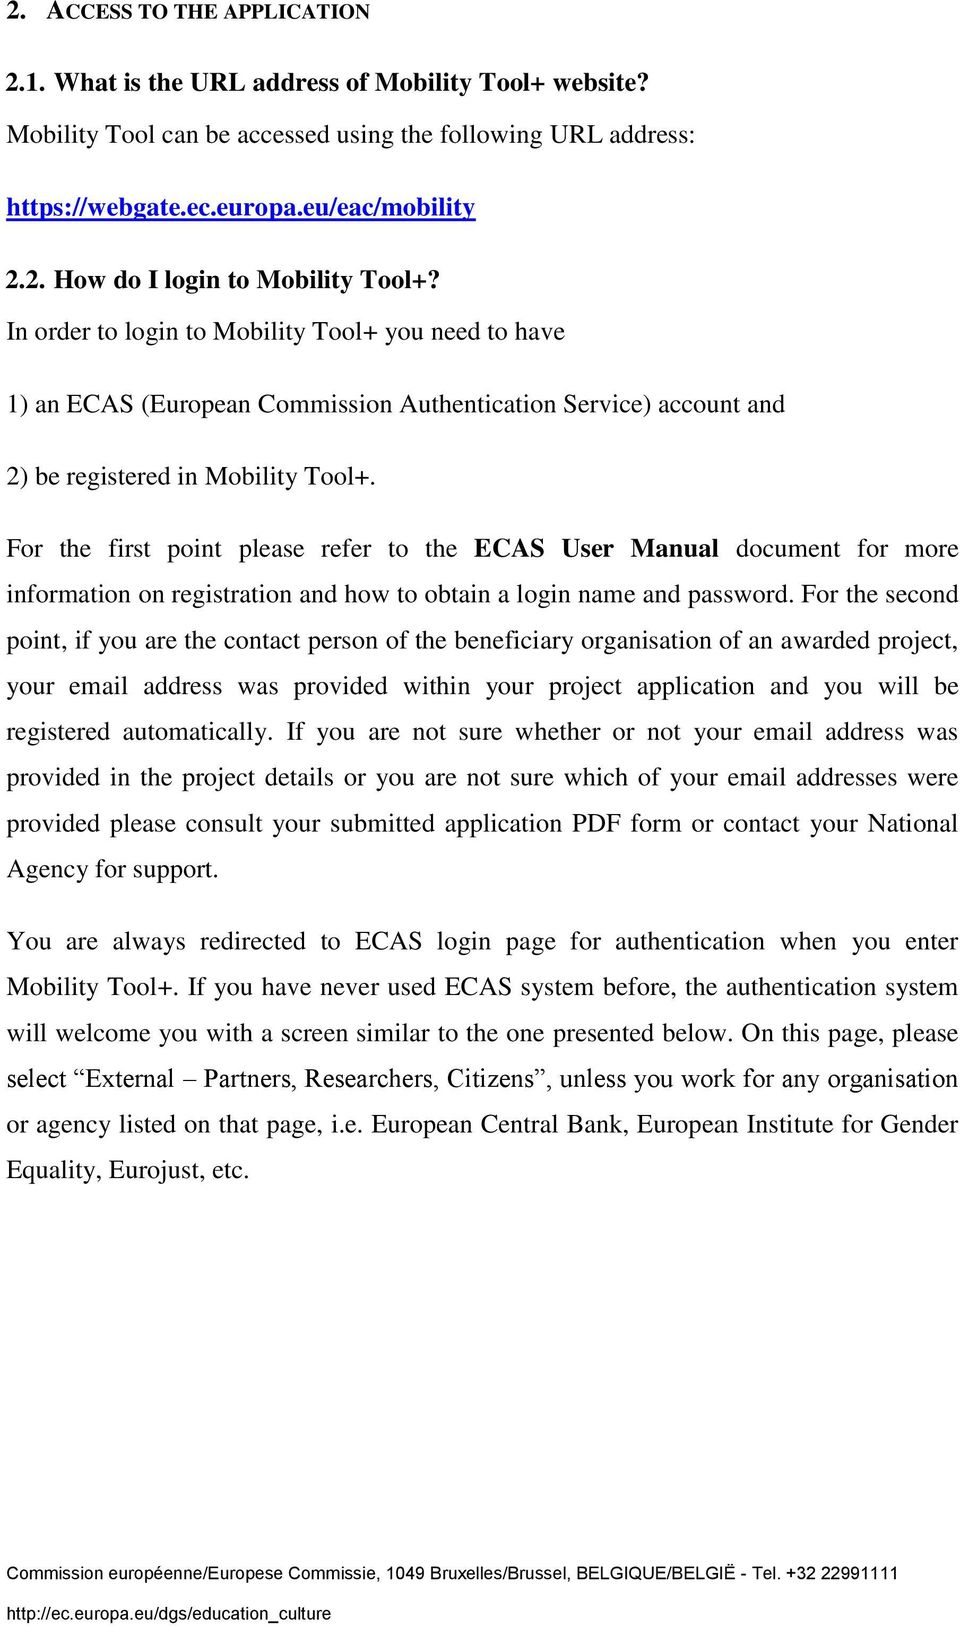 For the first point please refer to the ECAS User Manual document for more information on registration and how to obtain a login name and password.